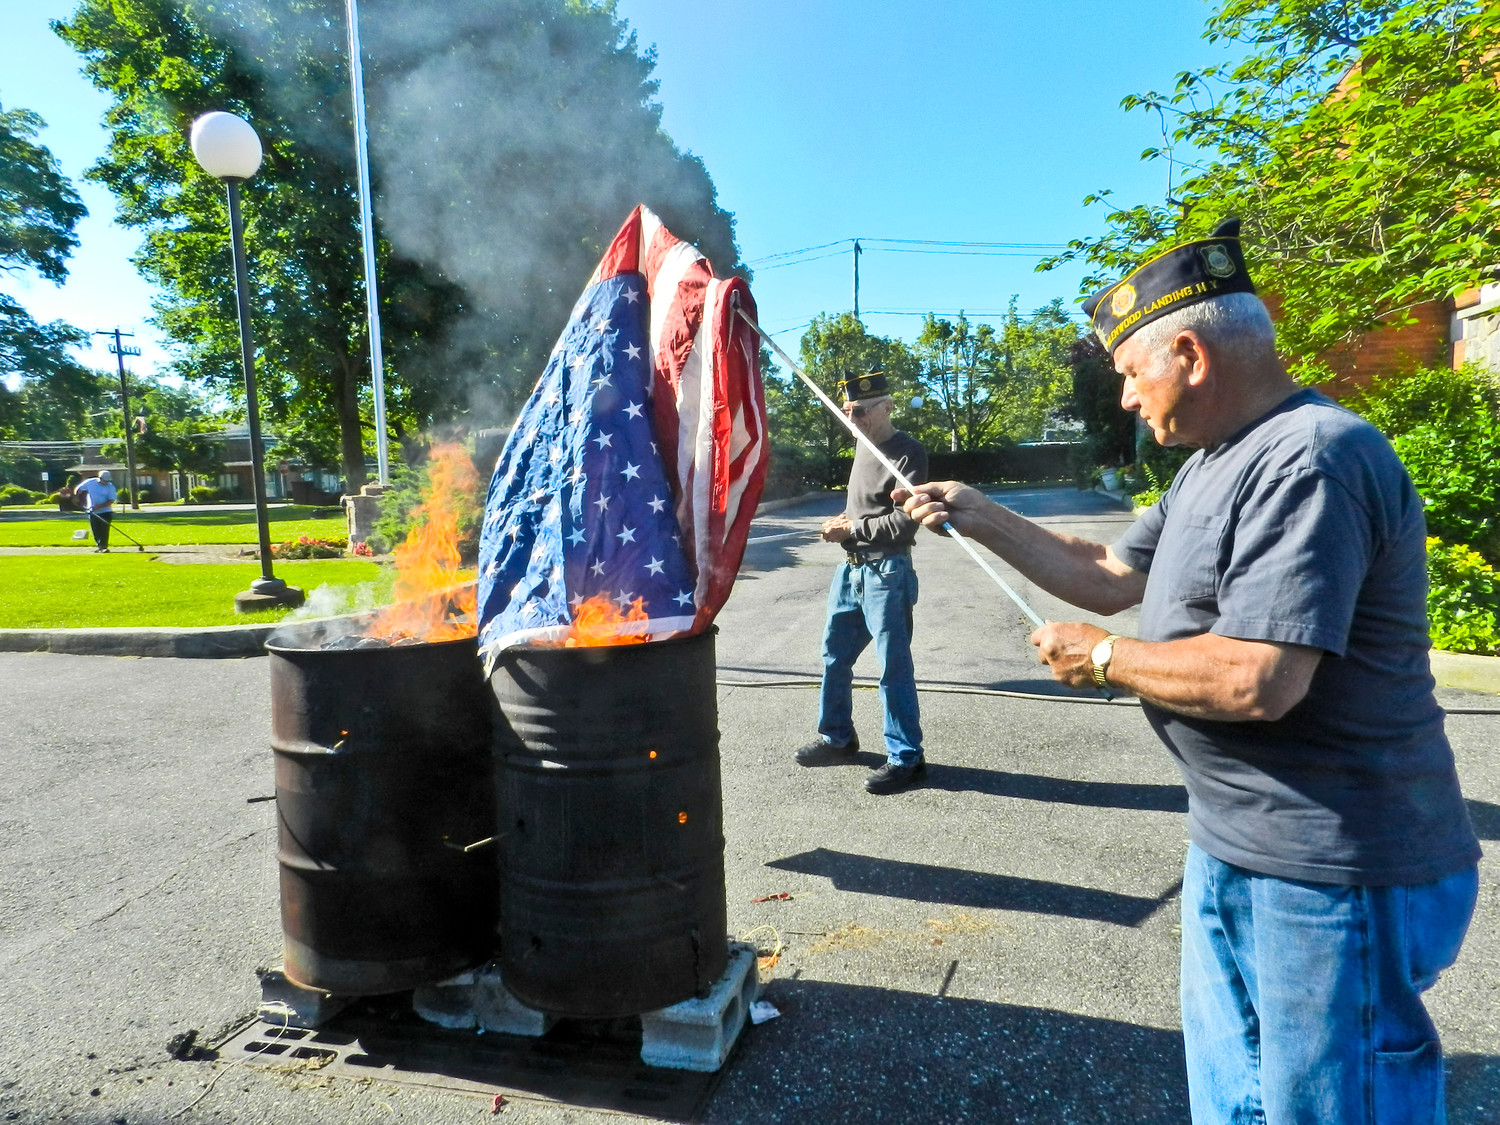 Korean War veteran Rocco Douso hoisted an American flag into the fire during the ceremony.